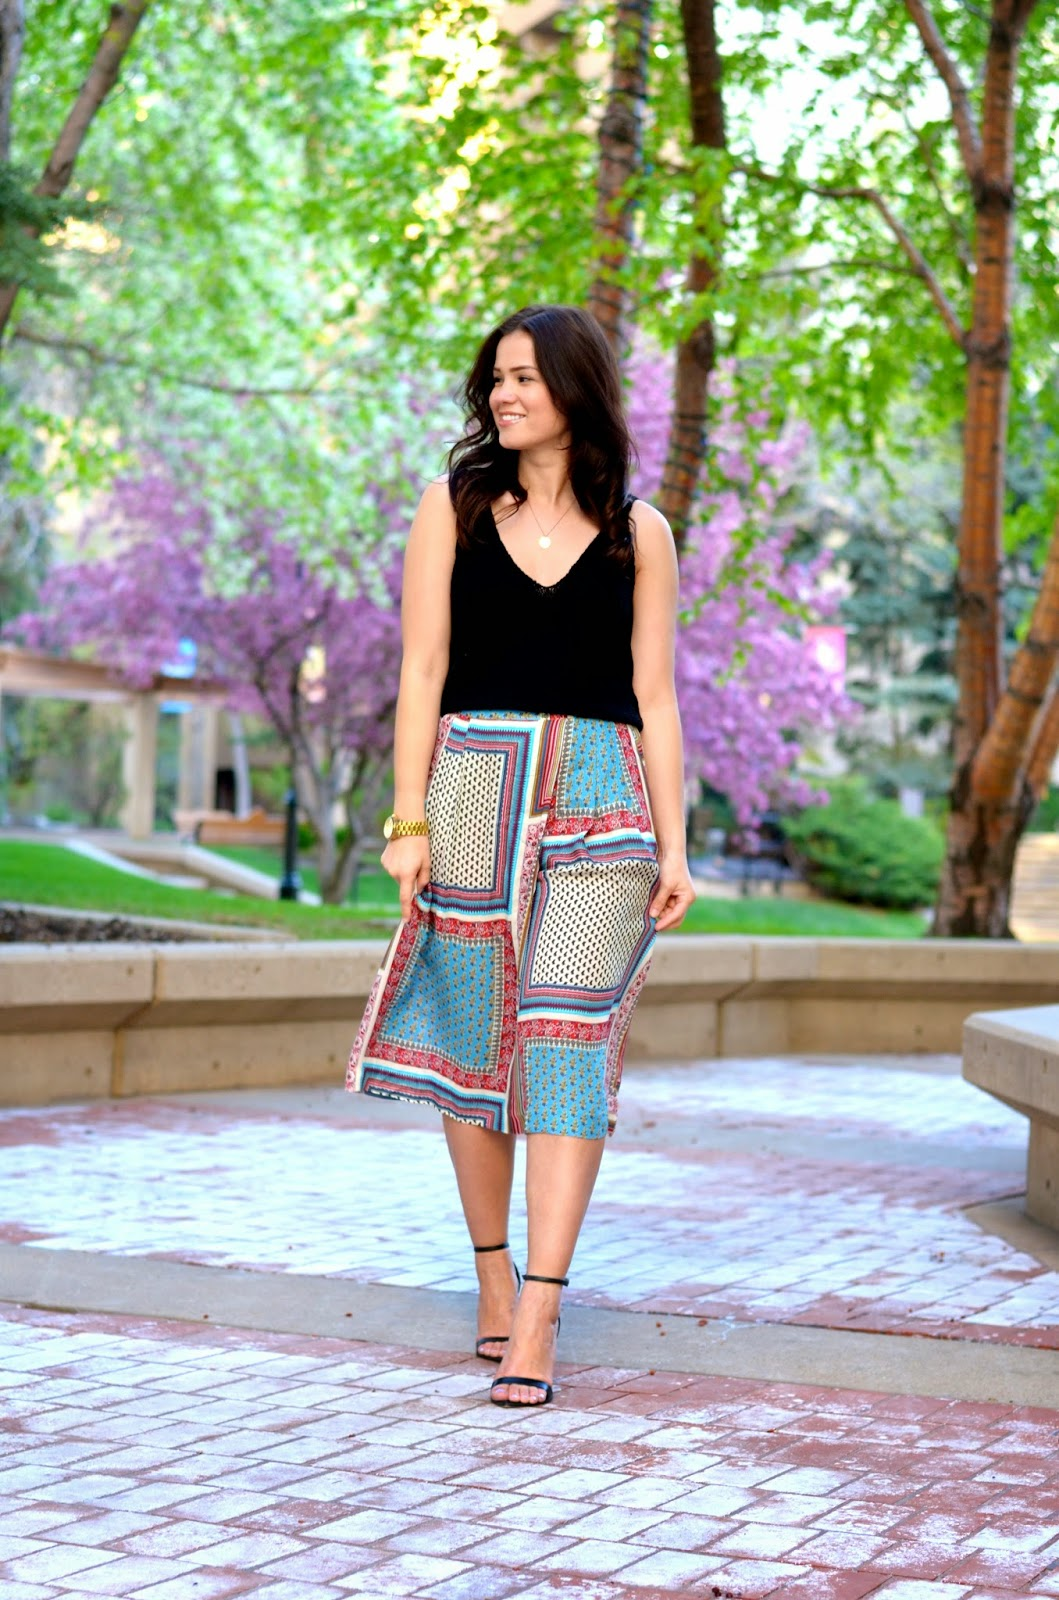 Street style tip of the day: Patterned culottes